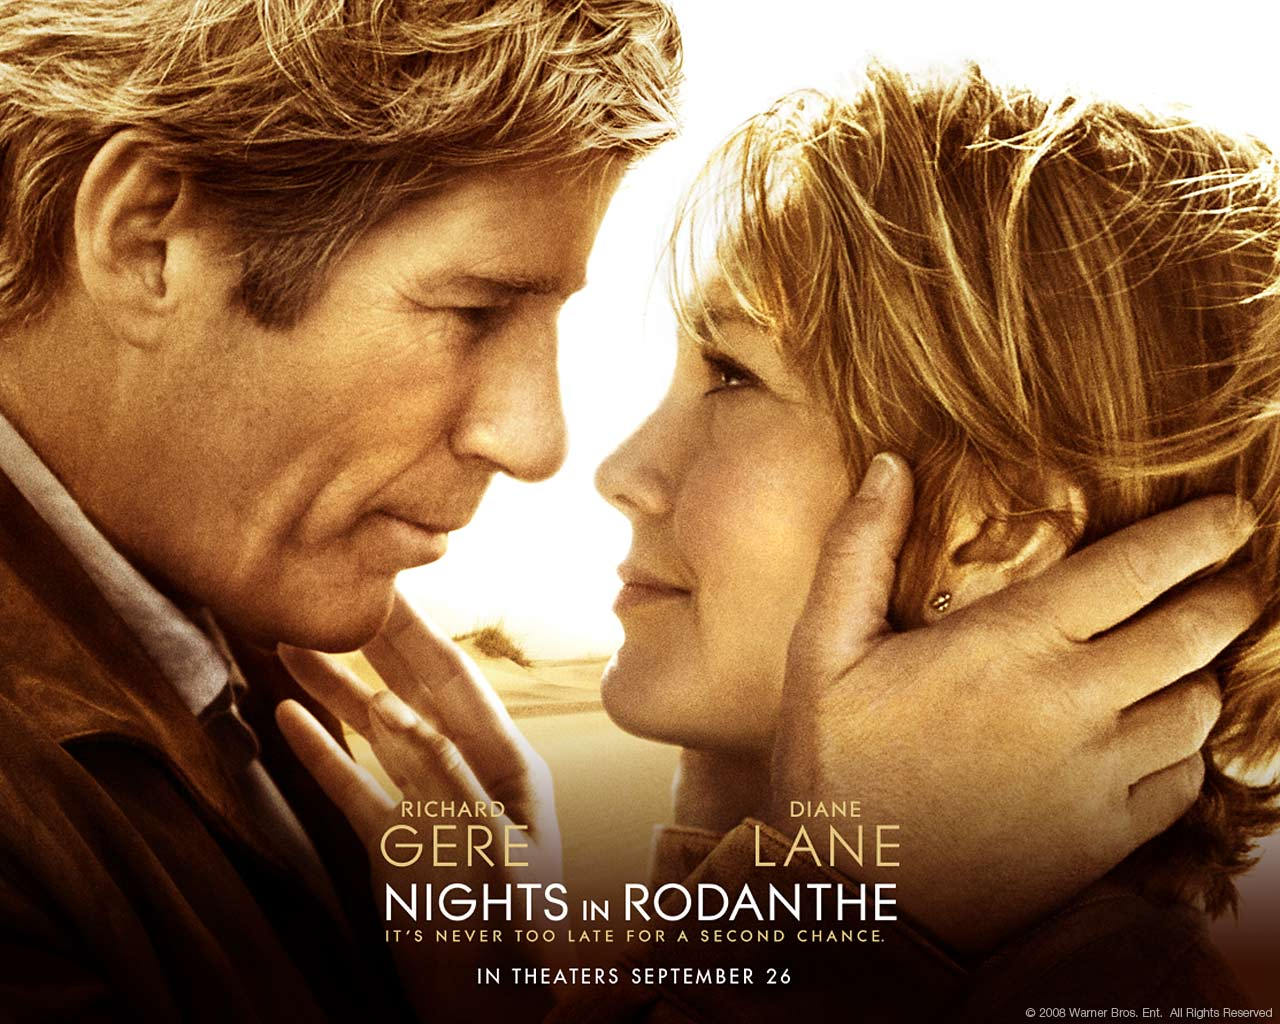 http://2.bp.blogspot.com/-KNSNeeutjrw/TuR_uRp7fTI/AAAAAAAAAZw/7Y4phQFpq8s/s1600/Richard_Gere_in_Nights_in_Rodanthe_Wallpaper_1_800.jpg